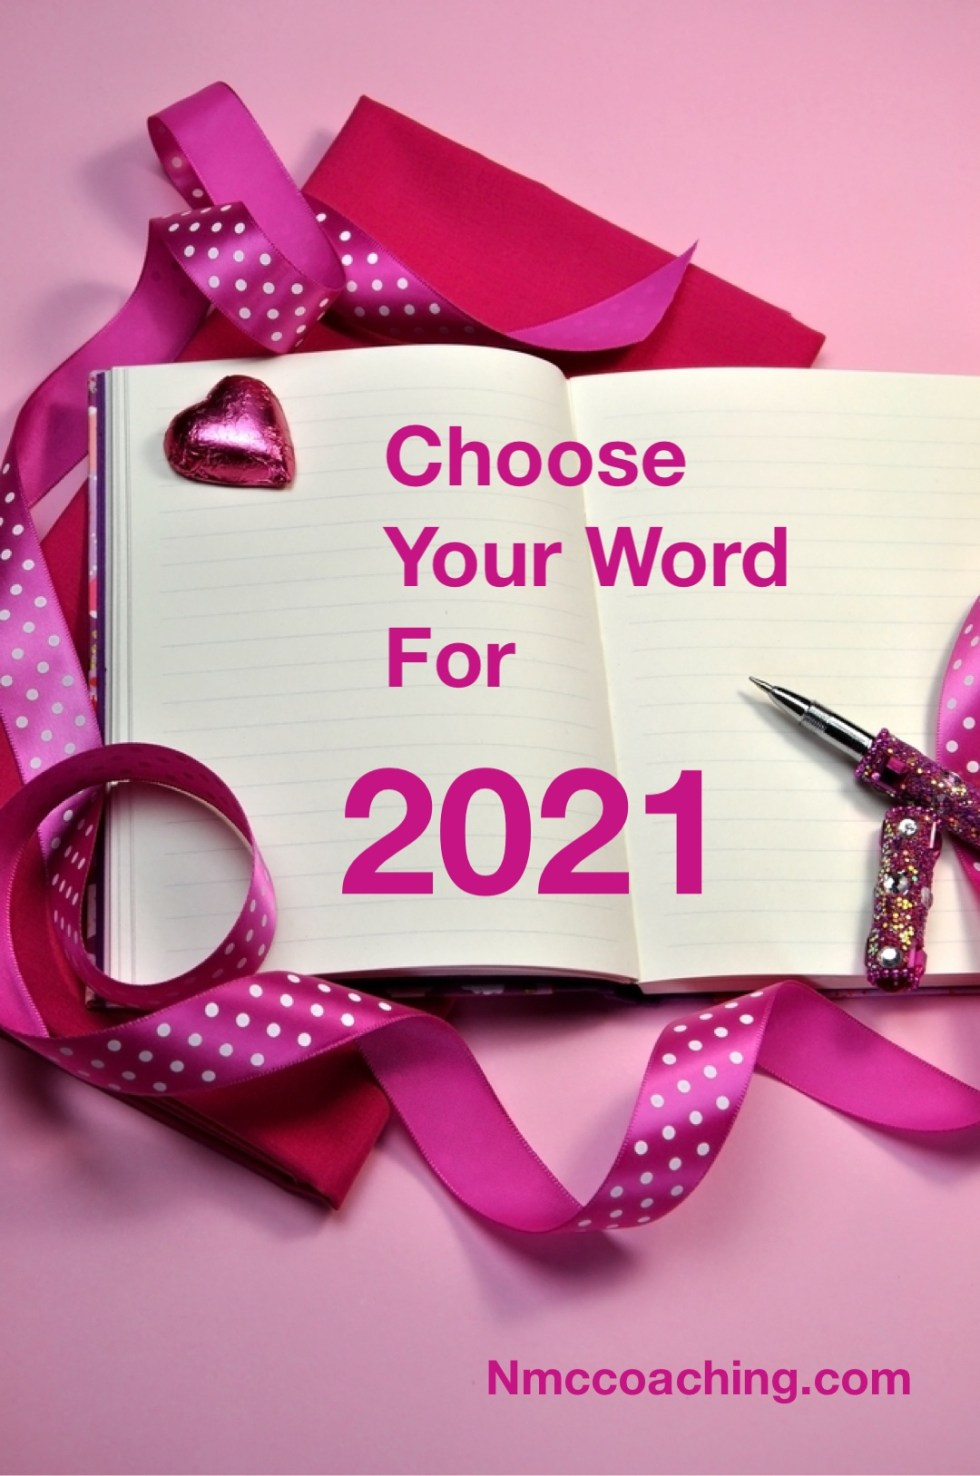 Choosing your word for 2021